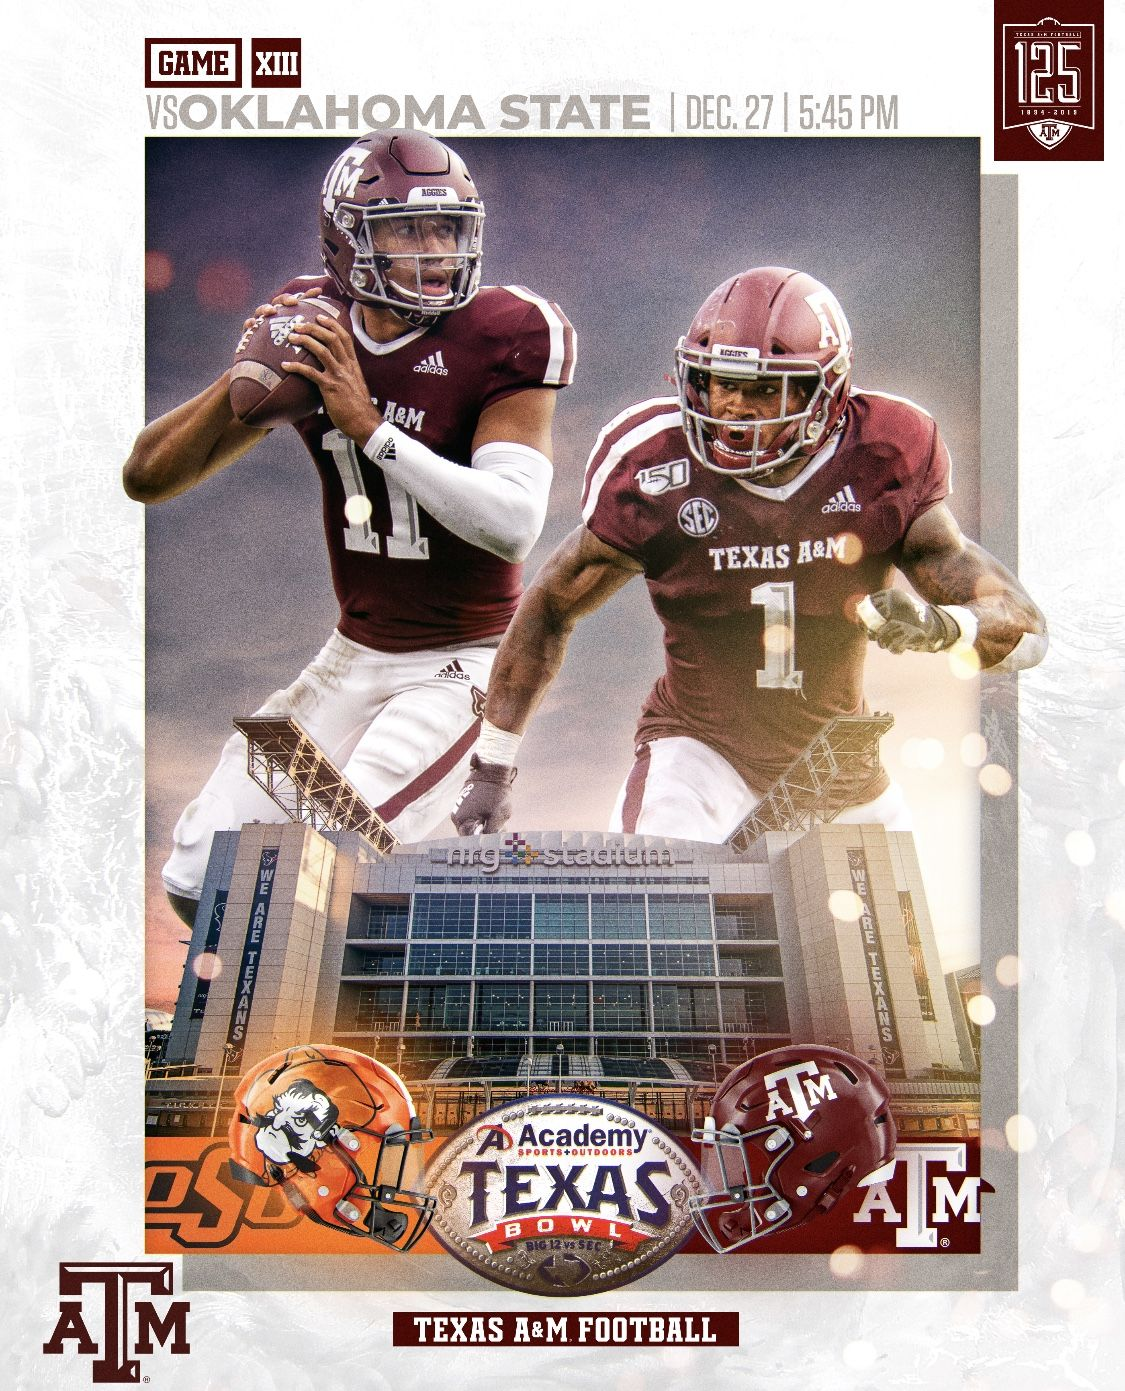 Pin by randy willis on football graphics in 2020 texas a